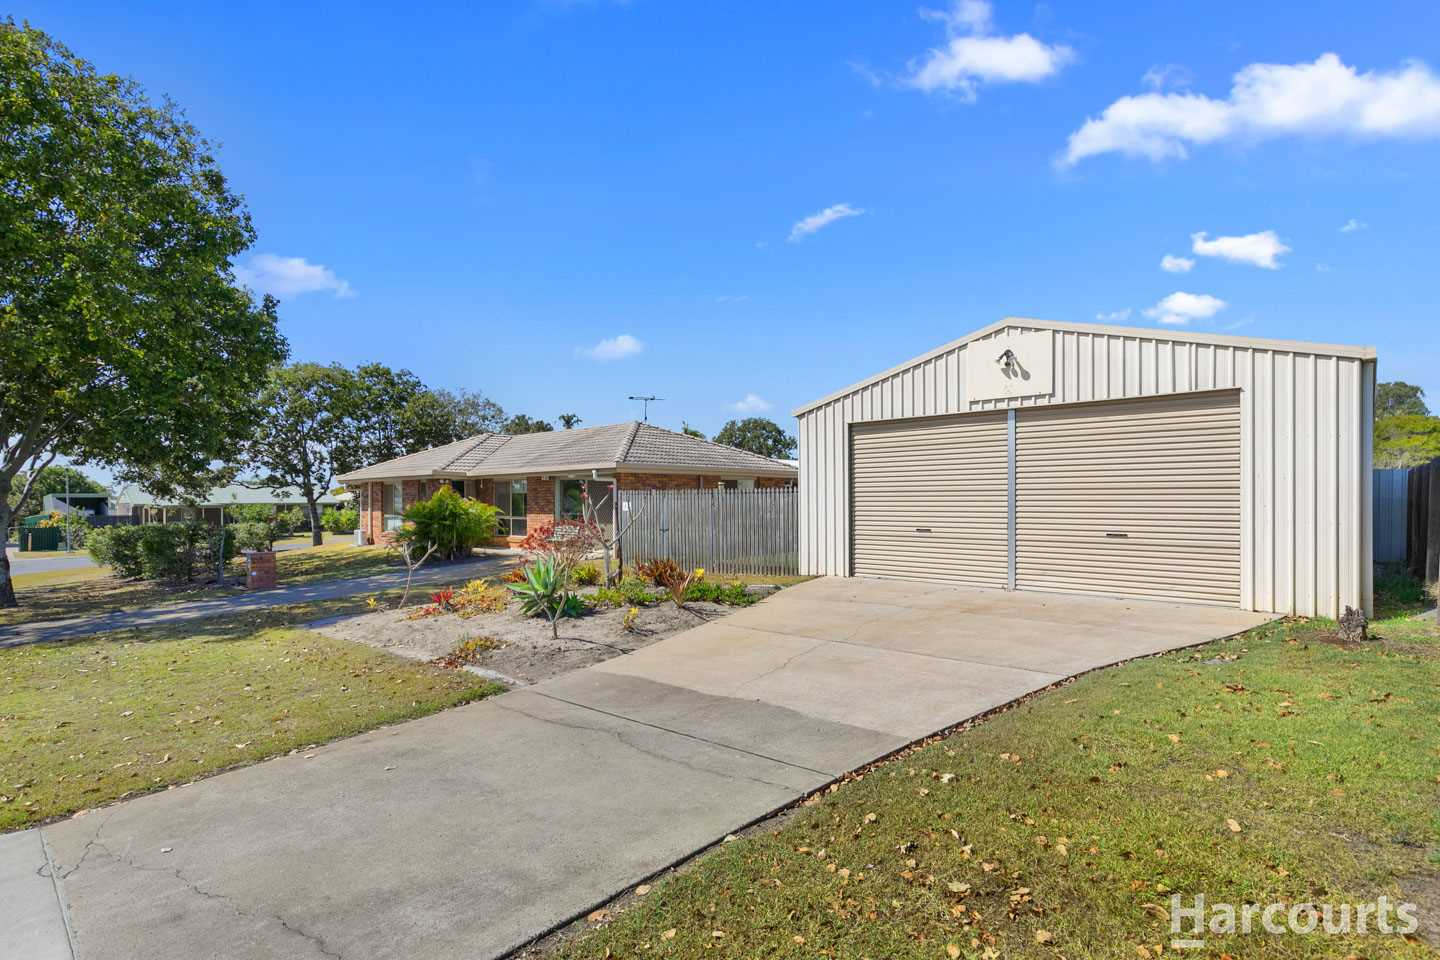 3 Bedroom Home - Large Shed - Potential Plus